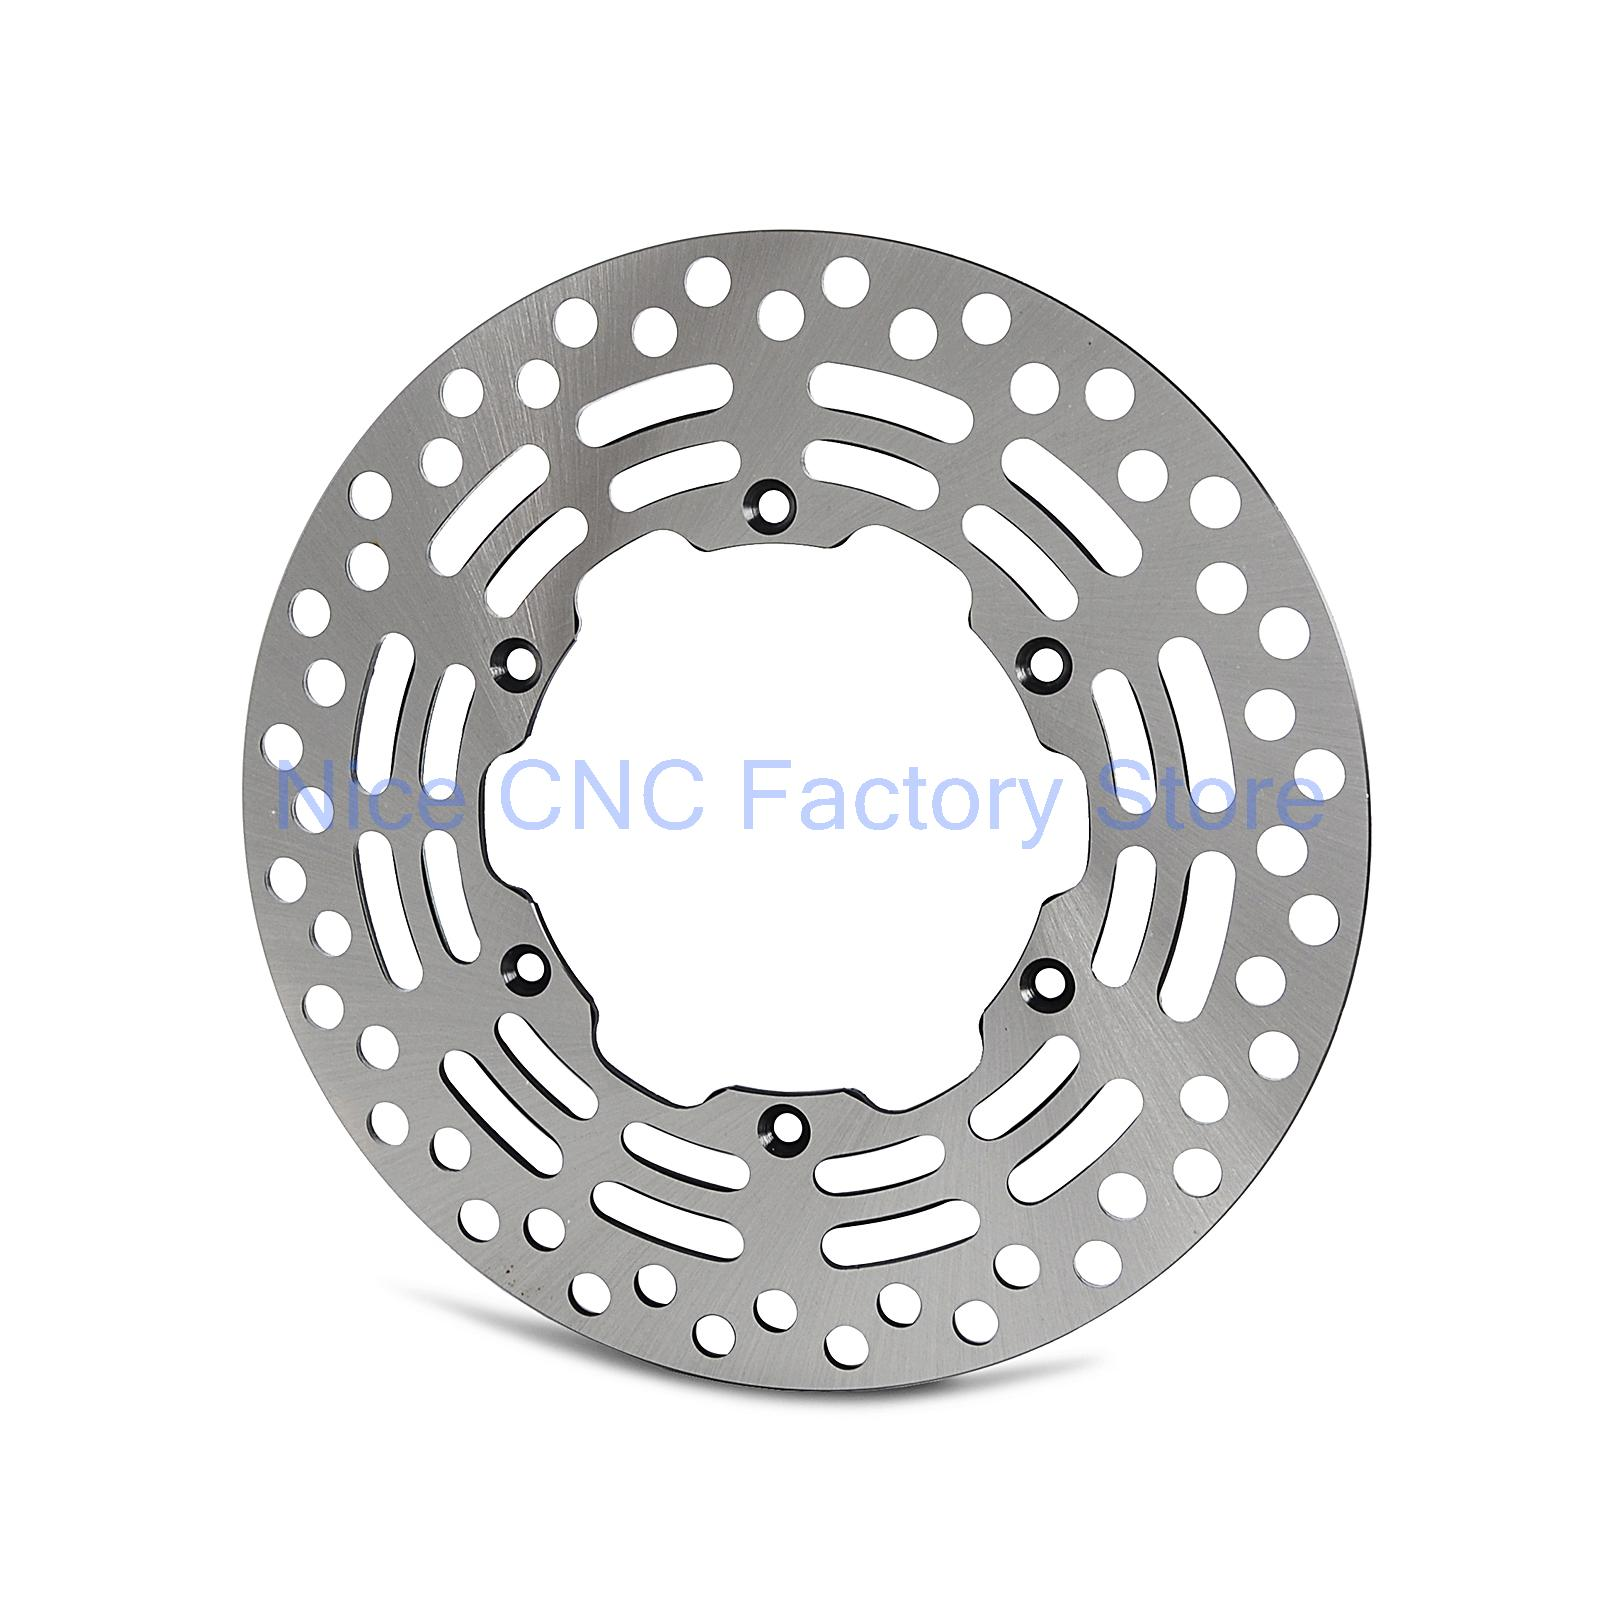 Front Brake Disc Rotor For Suzuki RM125 RM250 88-10 DR-Z250 01-07 DR-Z400 00-09 DR-Z 250 400 RMX250 89-99 Kawasaki KLX400 03-06 rm dr rm z 125 250 350 400 450 650 front brake pads